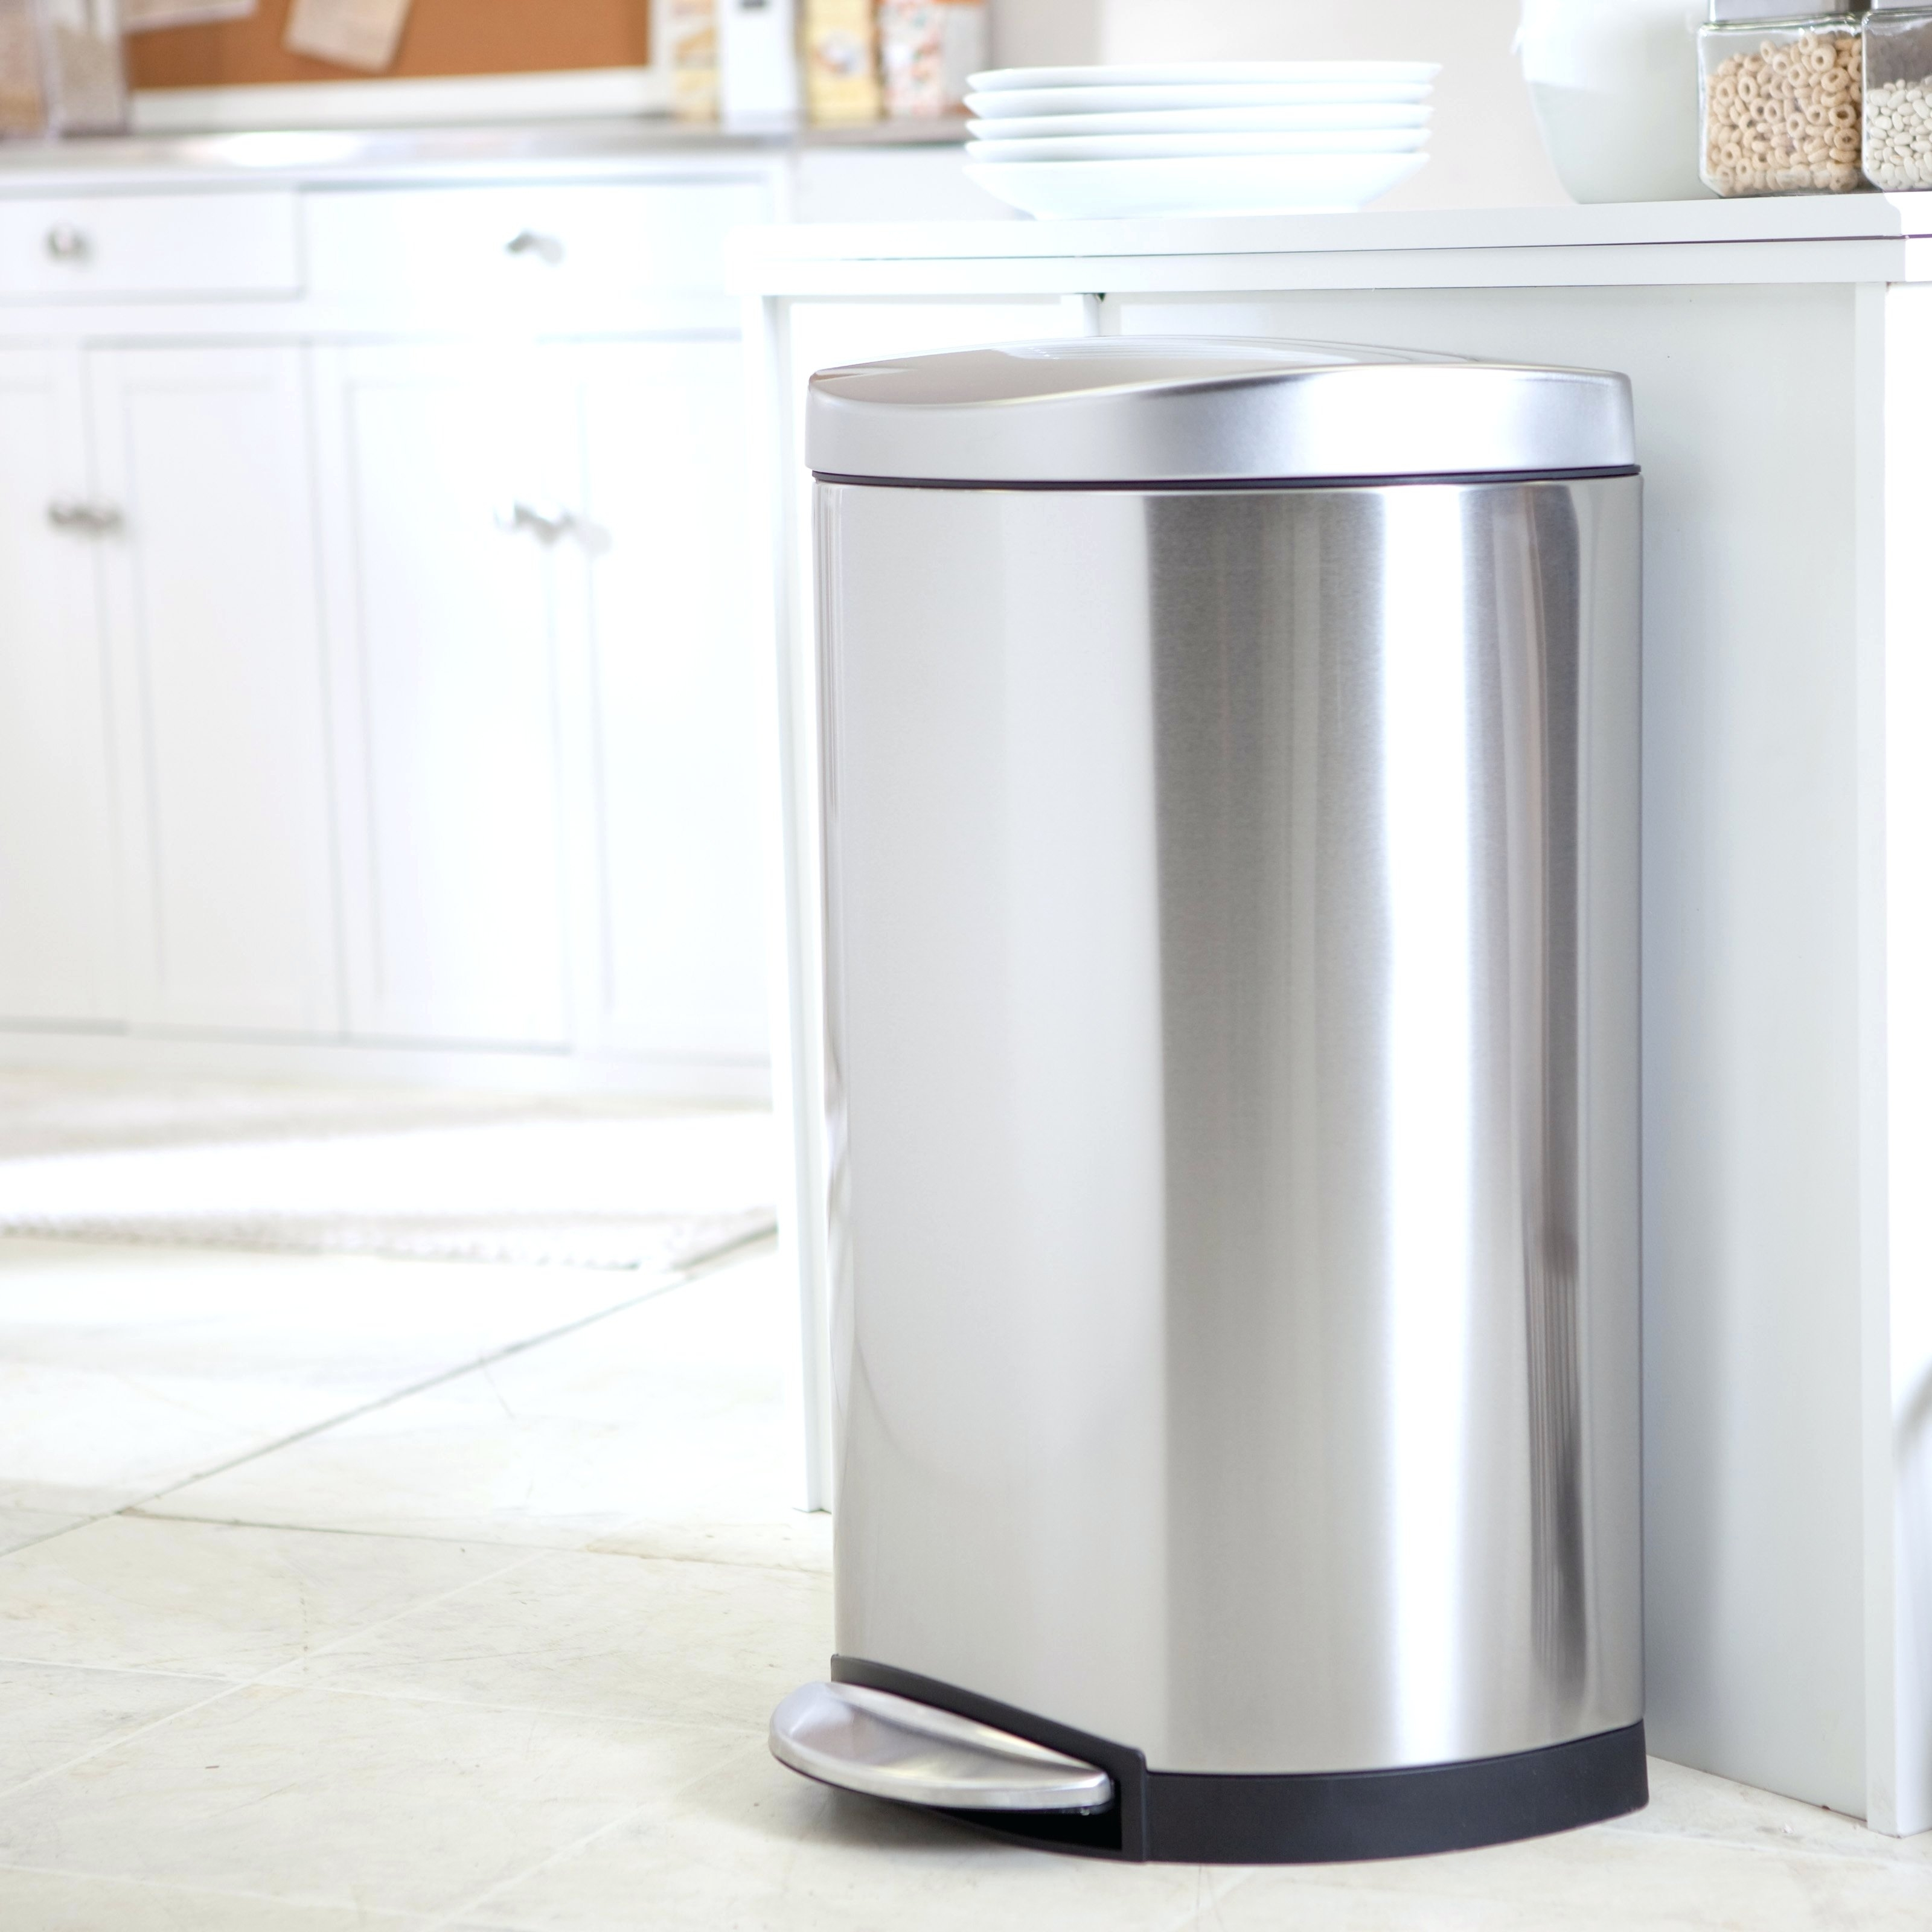 Stainless Steel Tall Kitchen Garbage Can Stainless Steel Indoor Trash Cans Madison Art Center Design